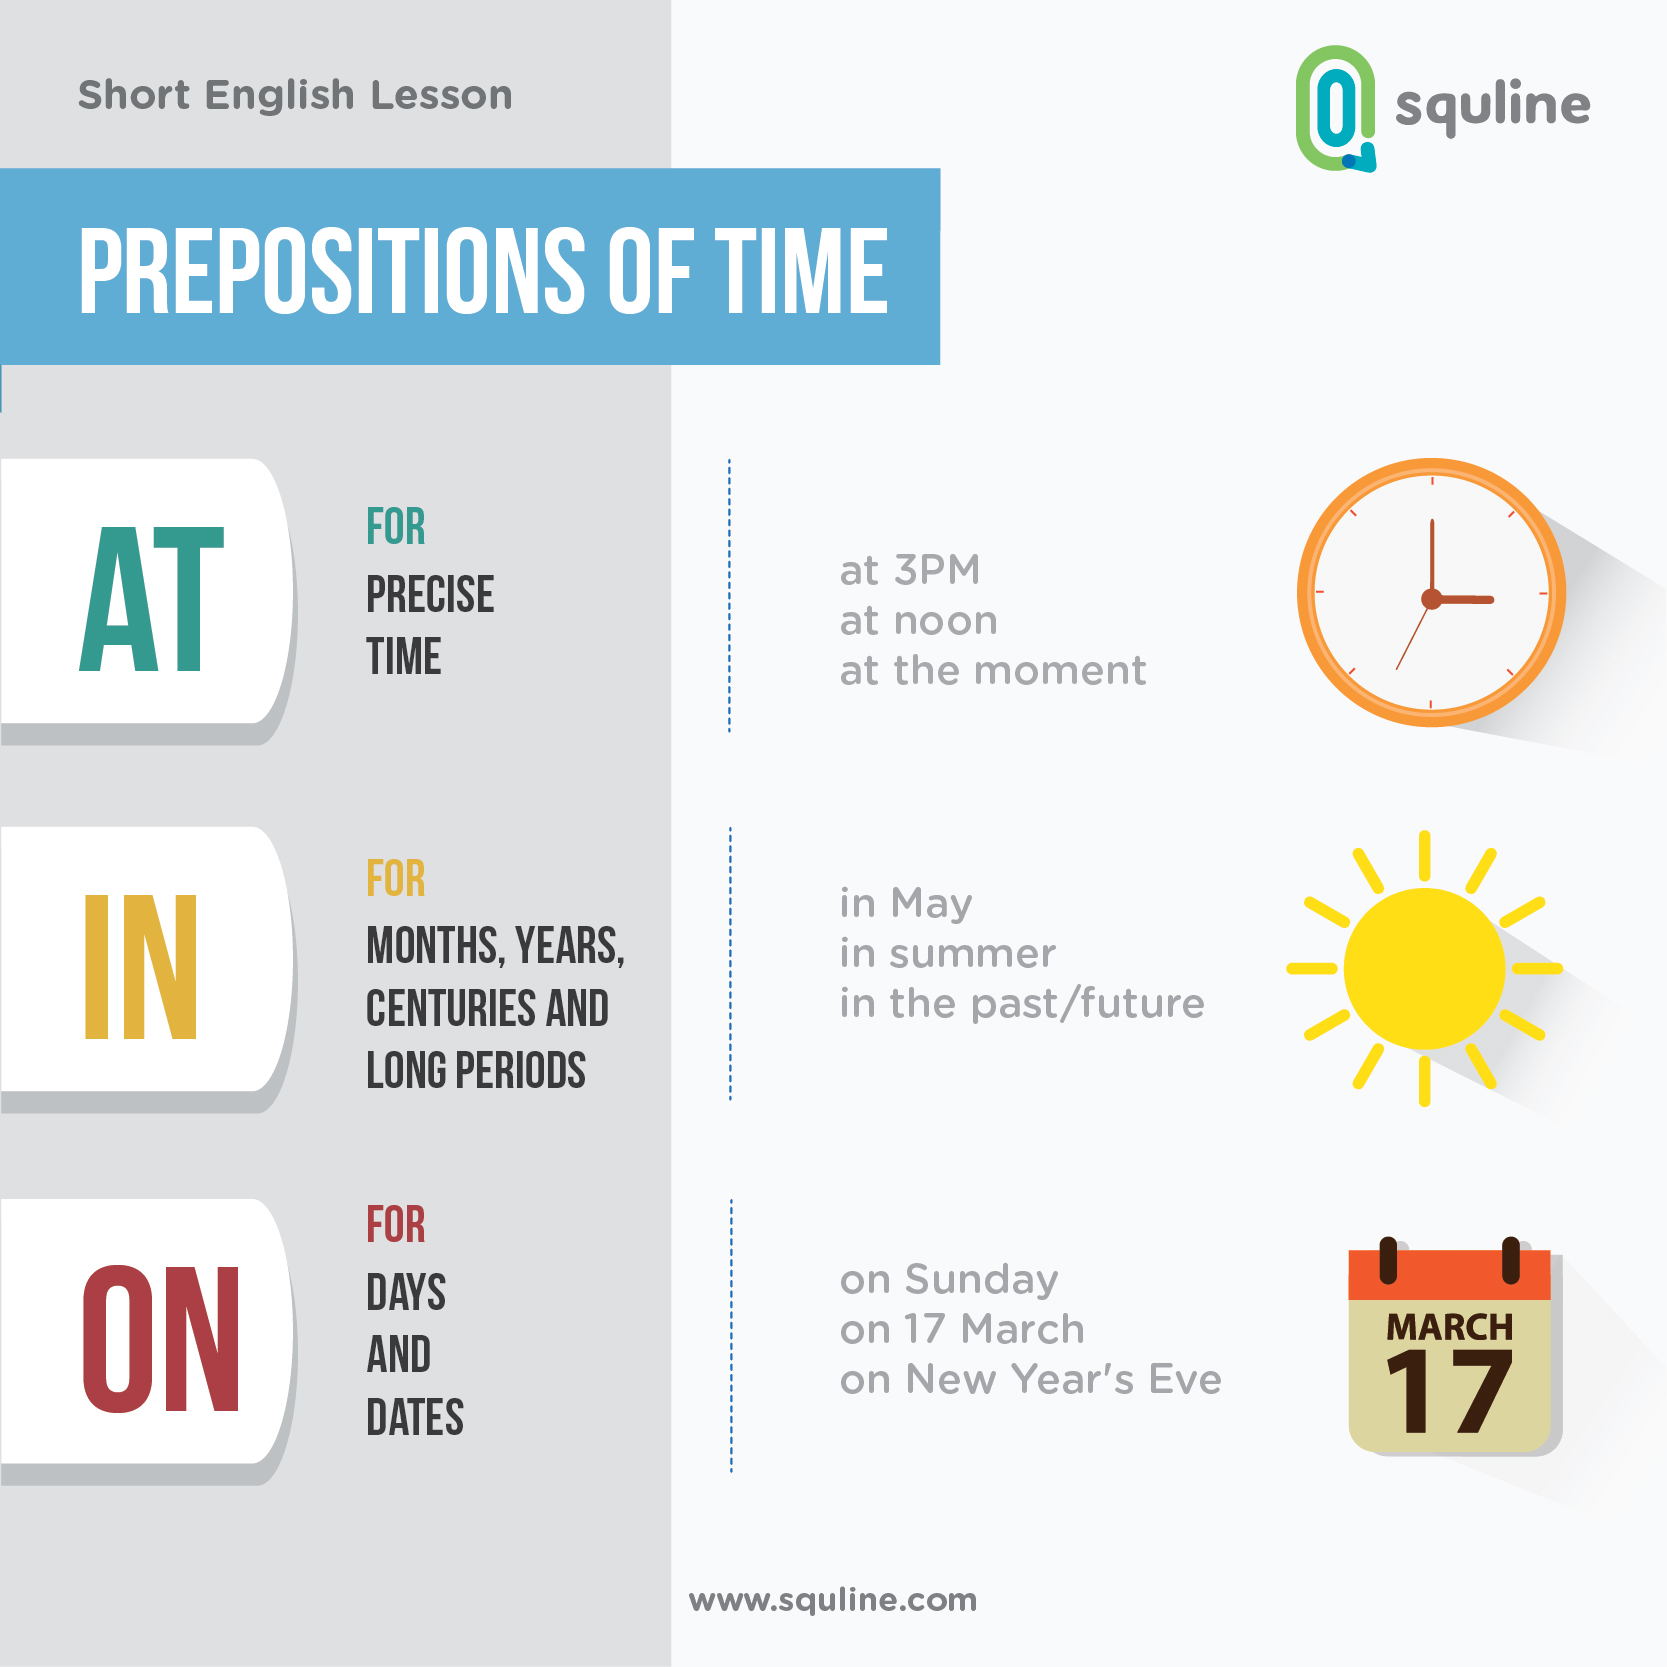 English short lesson prepositions of time squline english short lesson prepositions of time ccuart Image collections